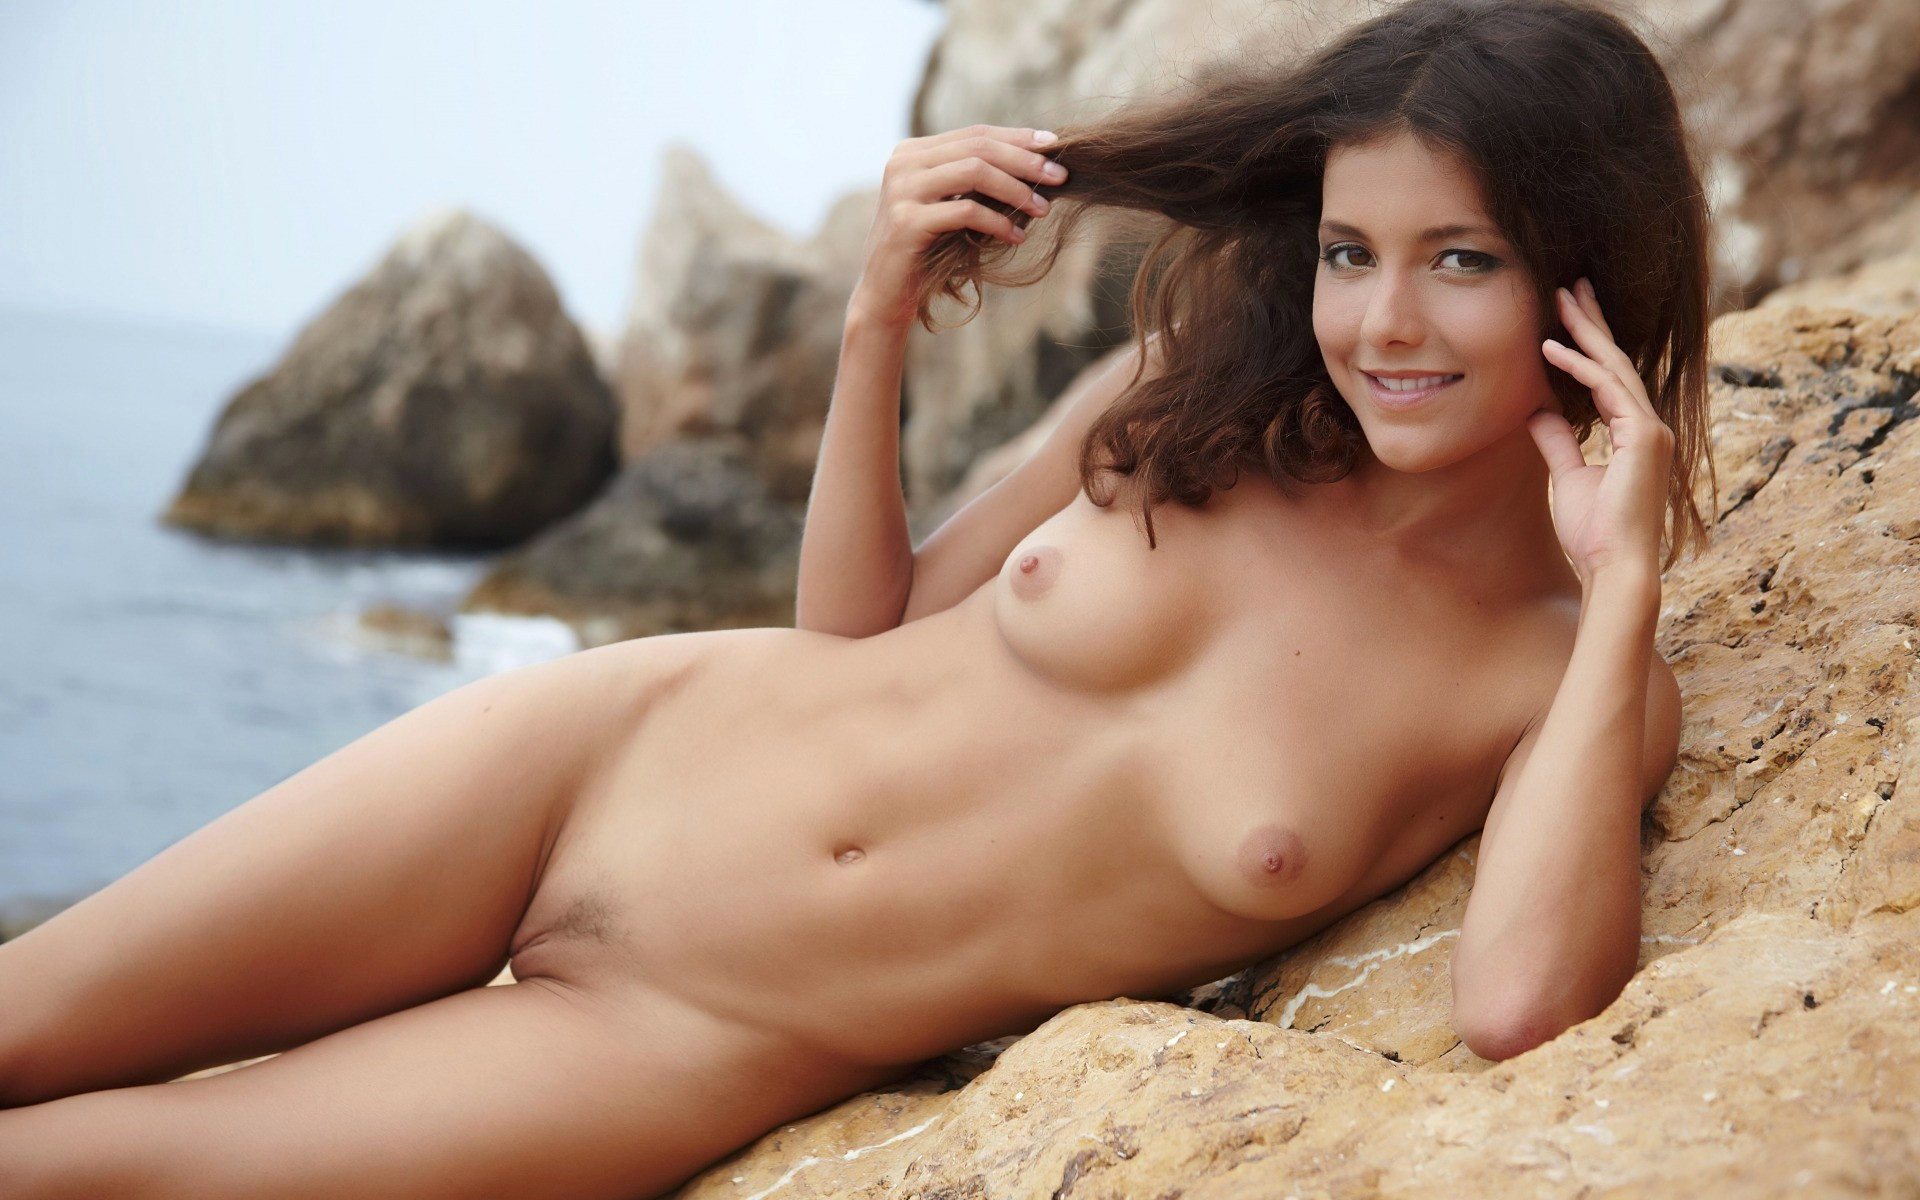 Nude photo images 1